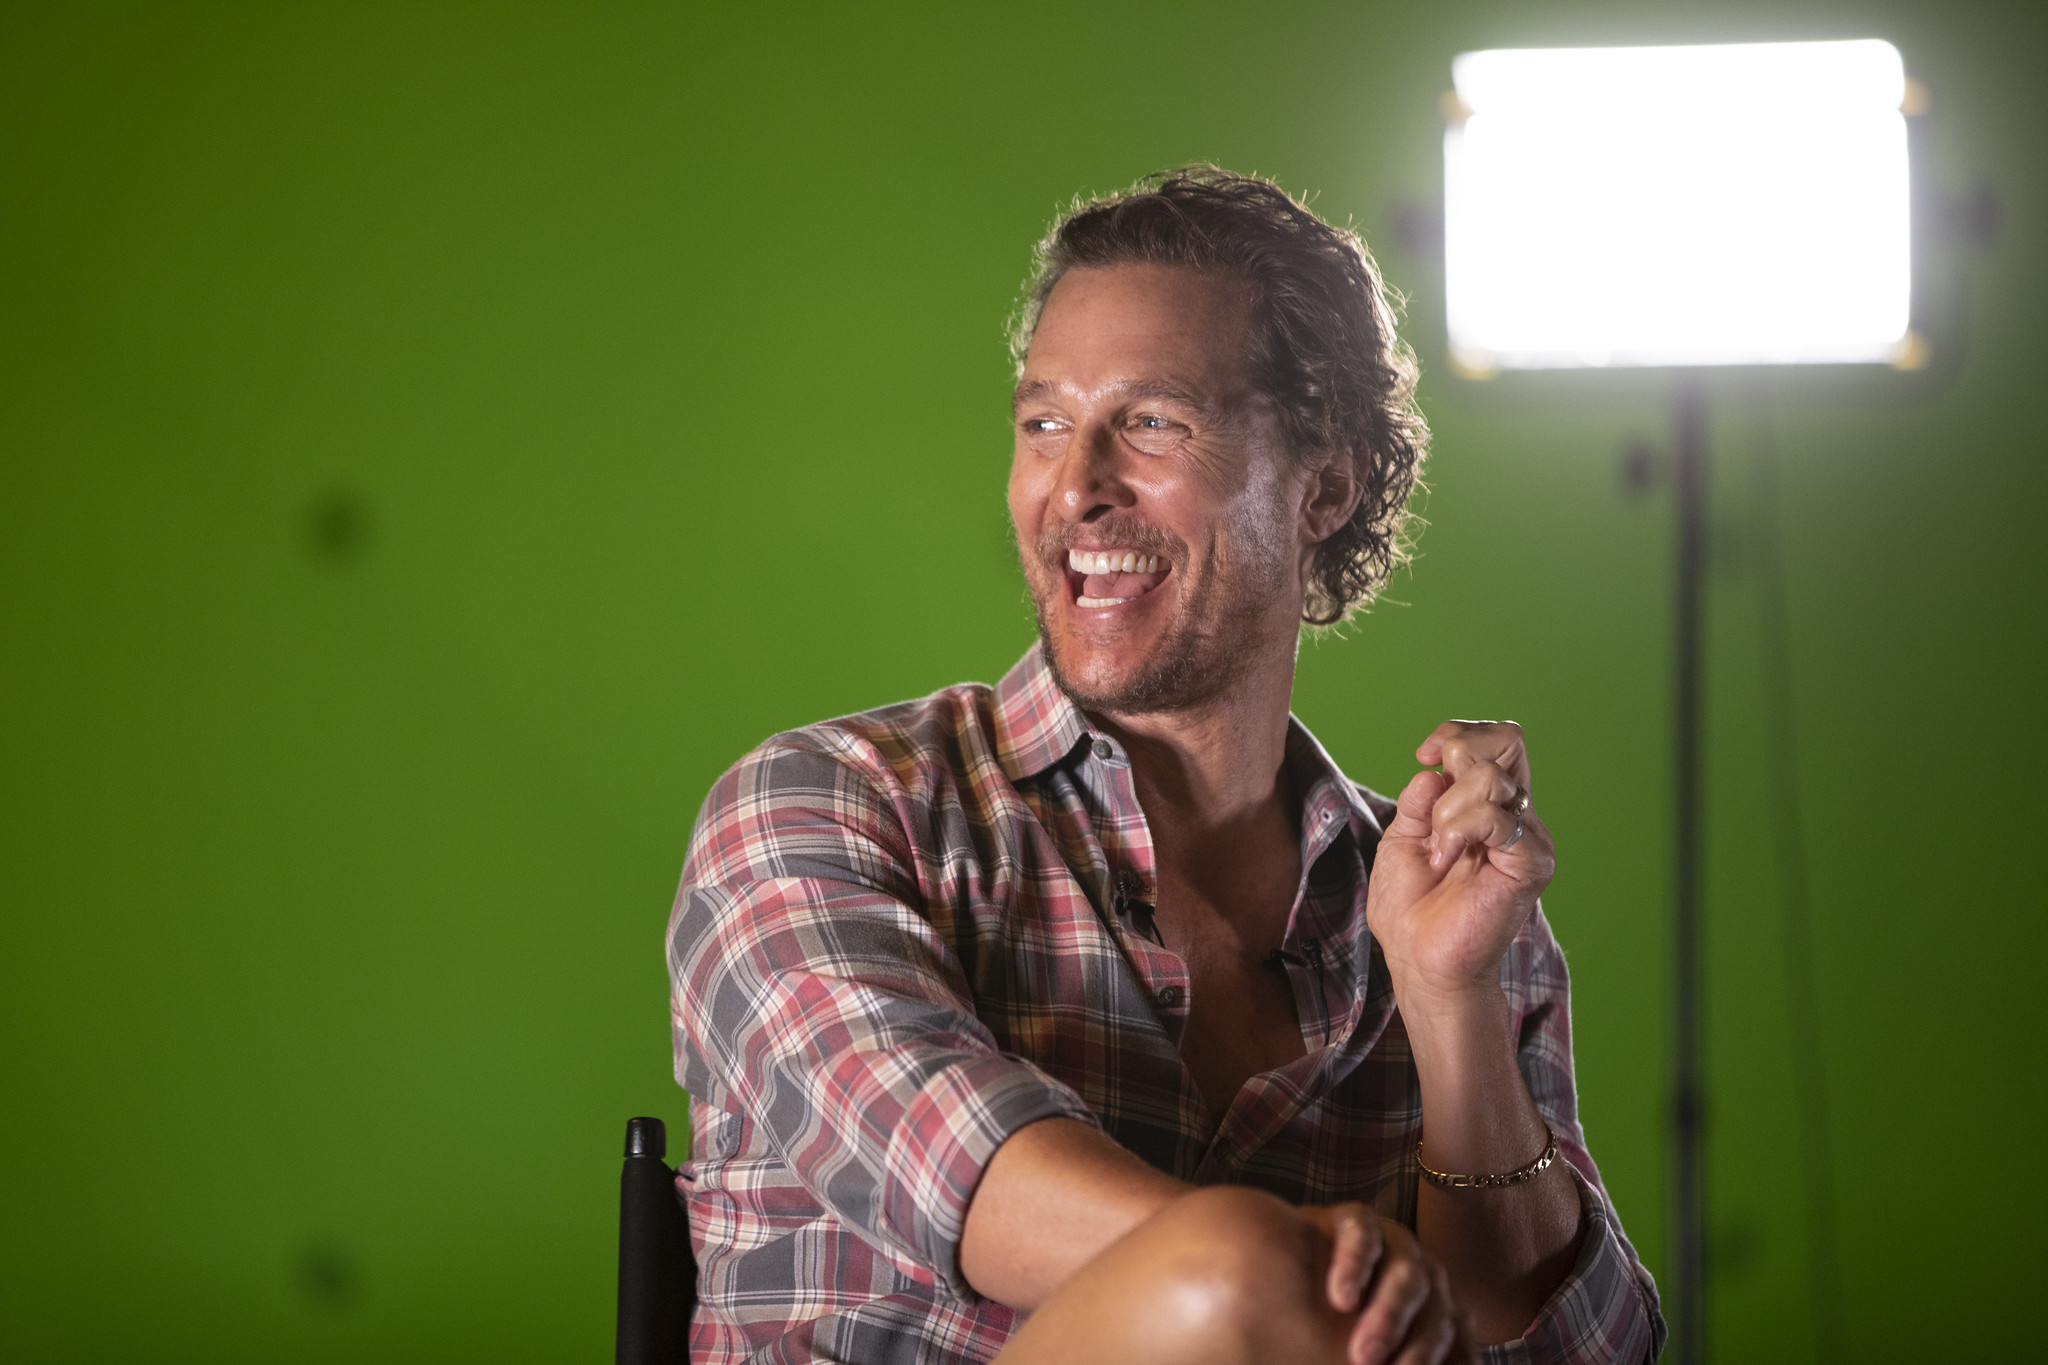 'Our Purpose Got Hijacked': Matthew McConaughey Urges Americans to Find Unity Amid Pandemic